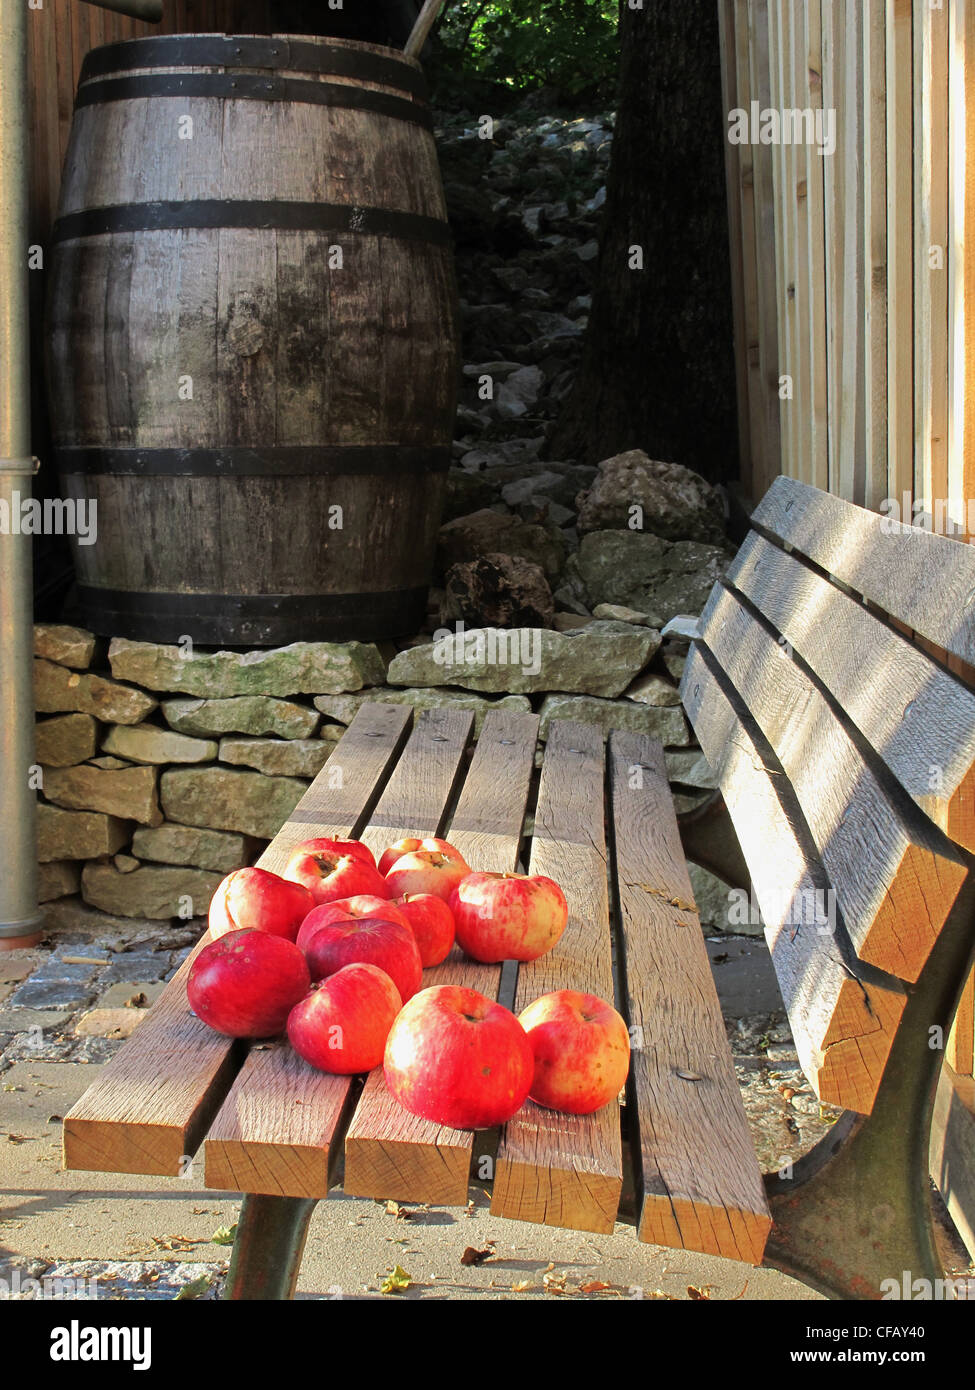 Miraculous Fruits Apples Red Bench Seat Wood Barrel Wooden Gmtry Best Dining Table And Chair Ideas Images Gmtryco